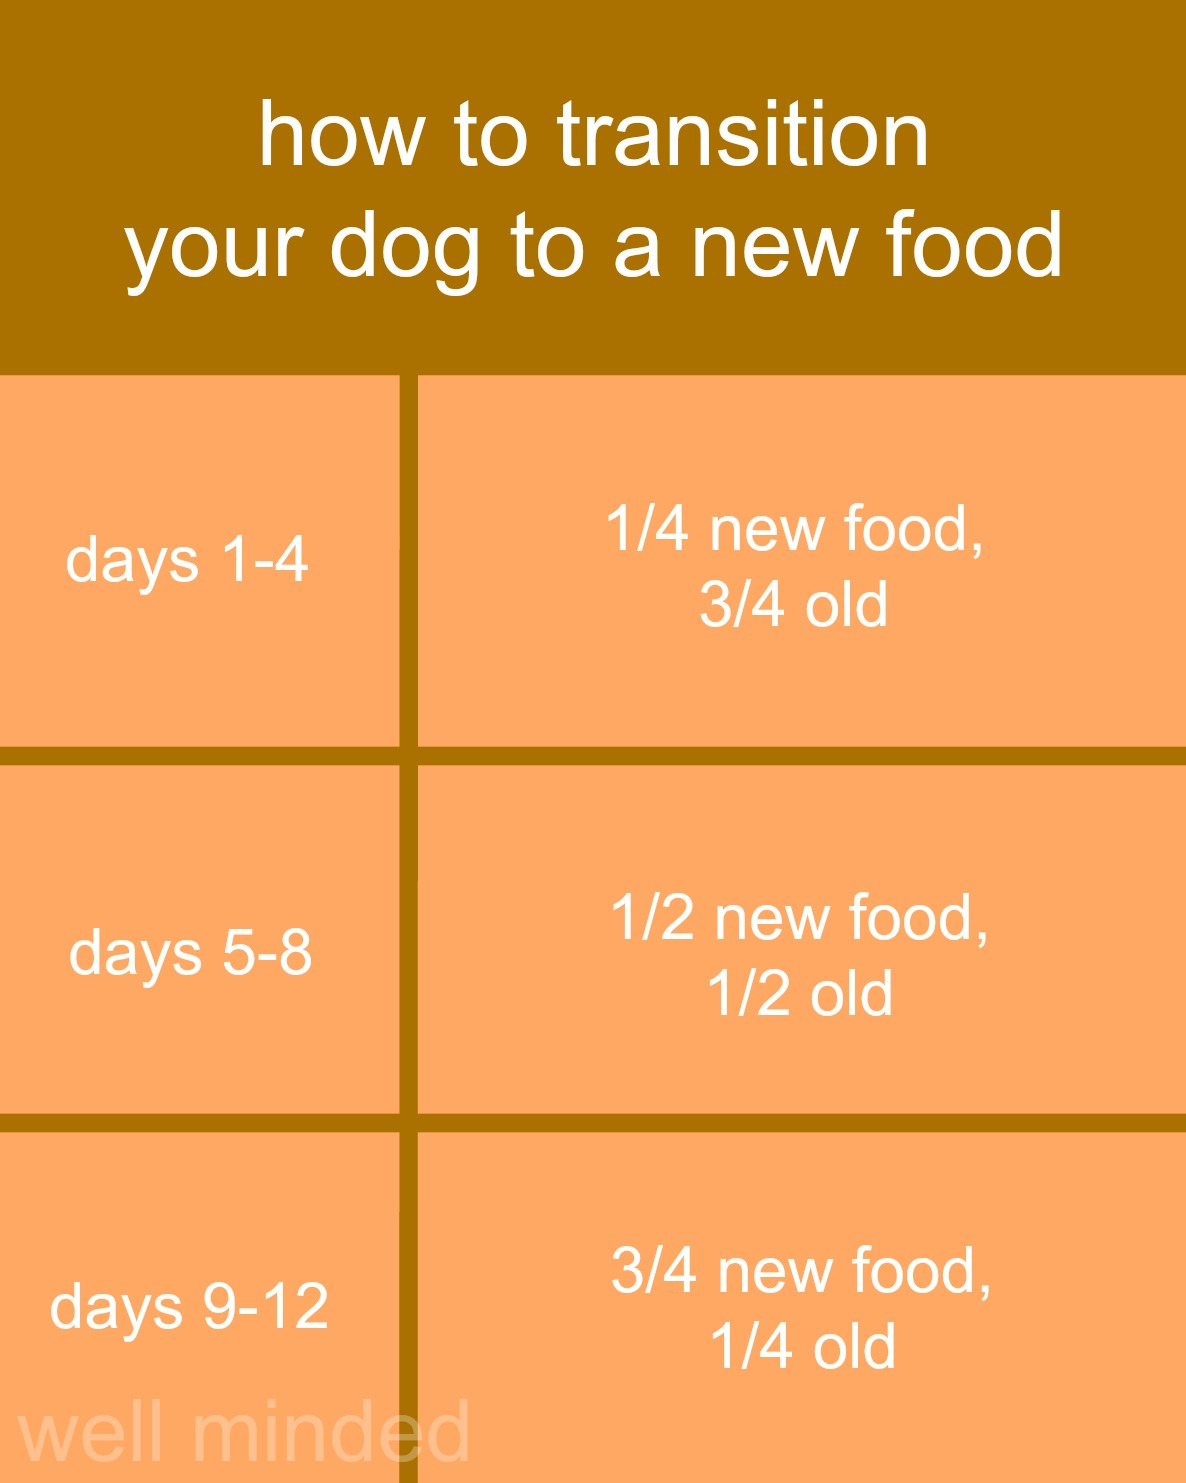 How to Transition Your Pet to a New Food Chart. wellmindedpets.com